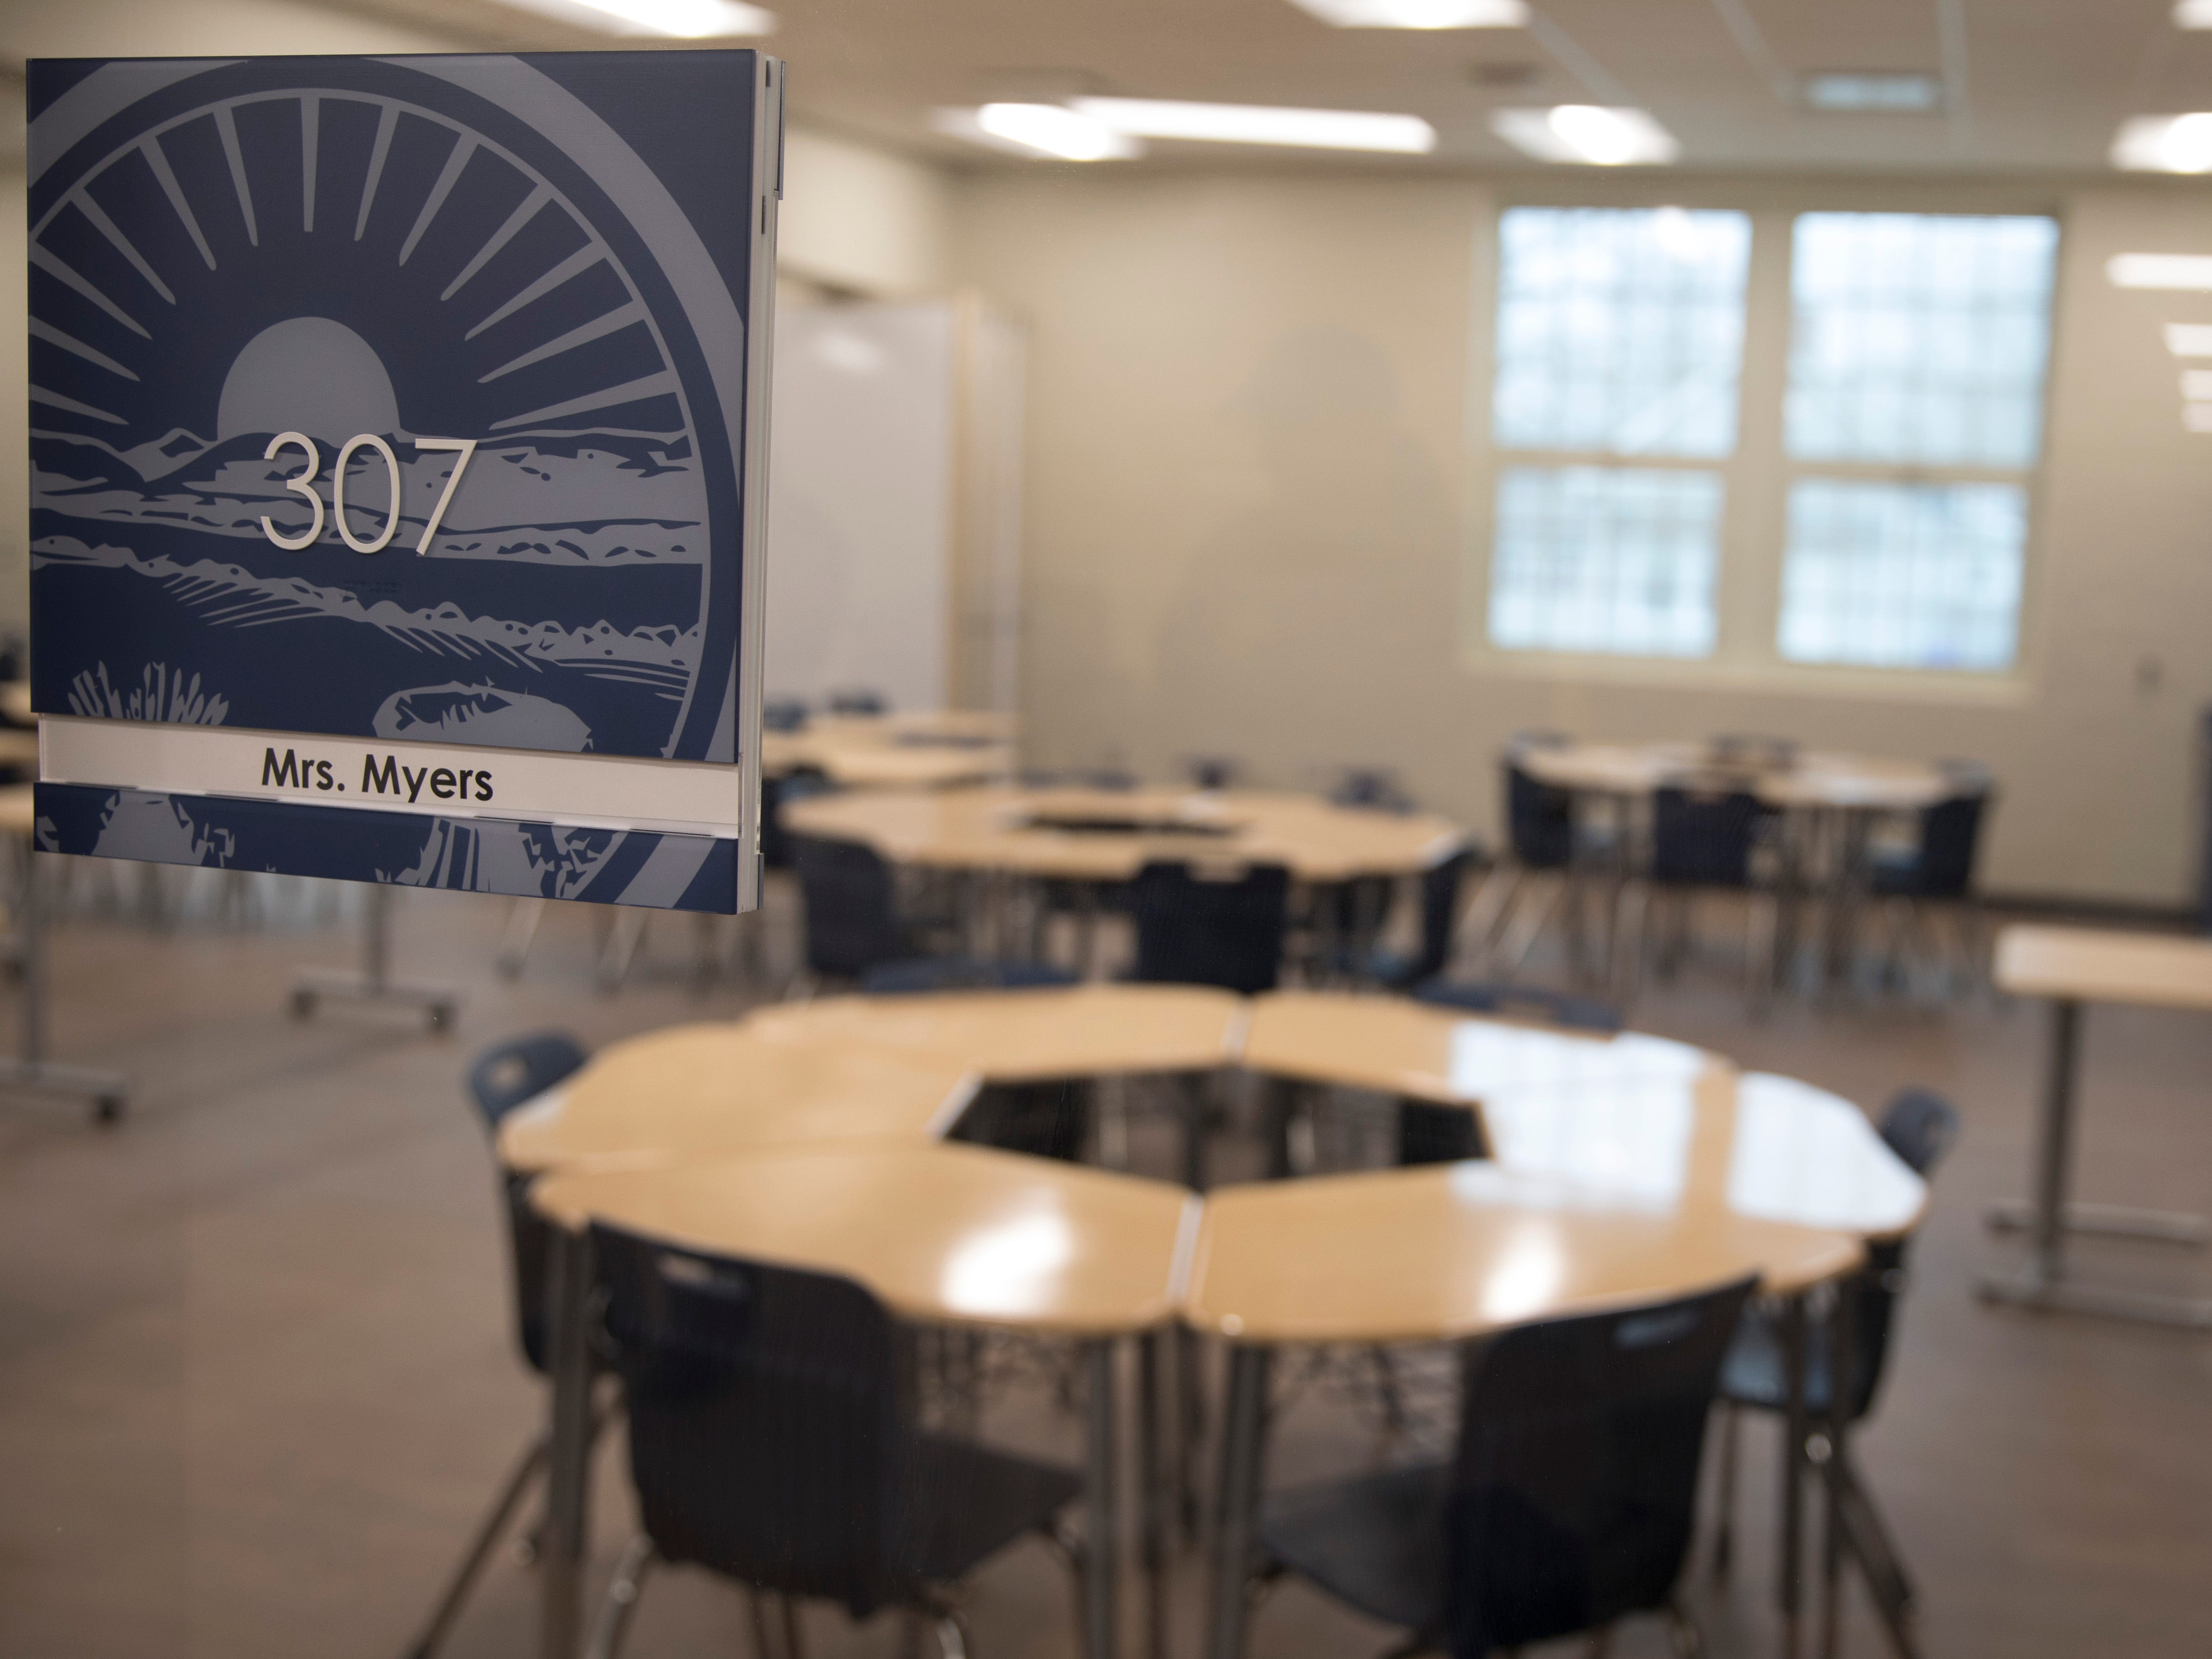 A teacher's name plaque with an Ohio seal is outside every classroom at the new Chillicothe Intermediate  School.